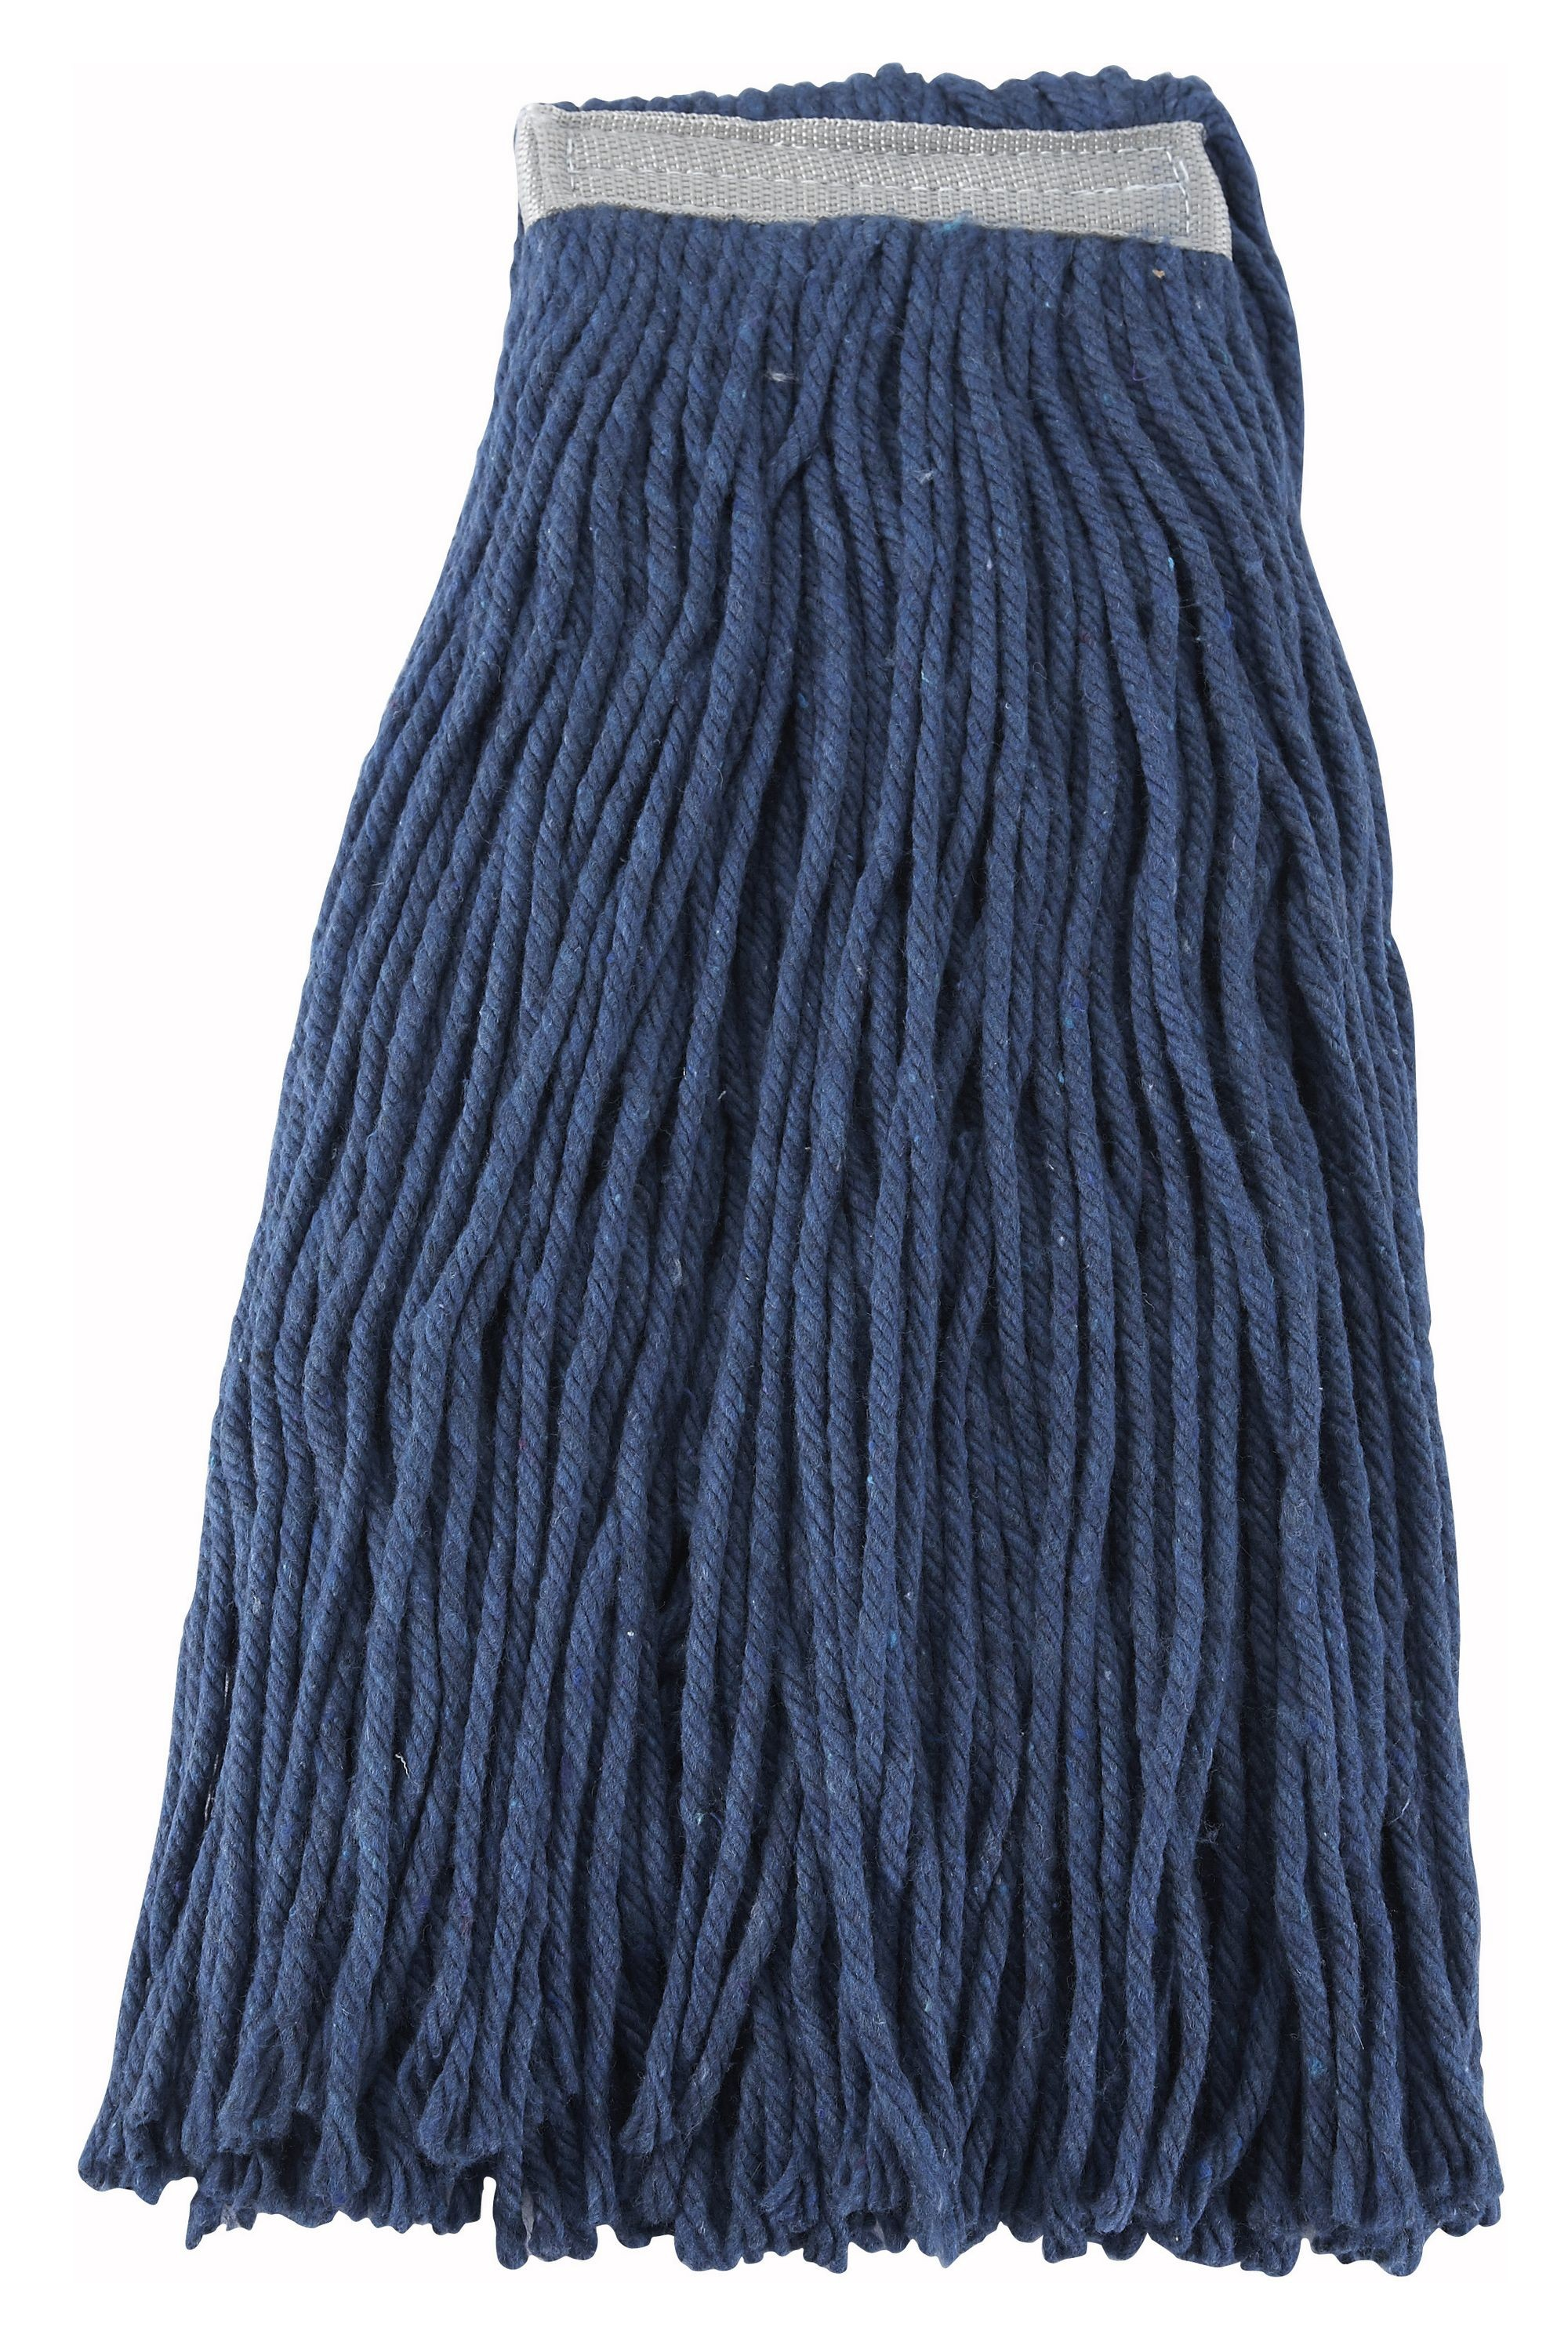 Winco mop-24c Premium Blue Yarn Mop Head, Cut Head 600g, 24 oz.